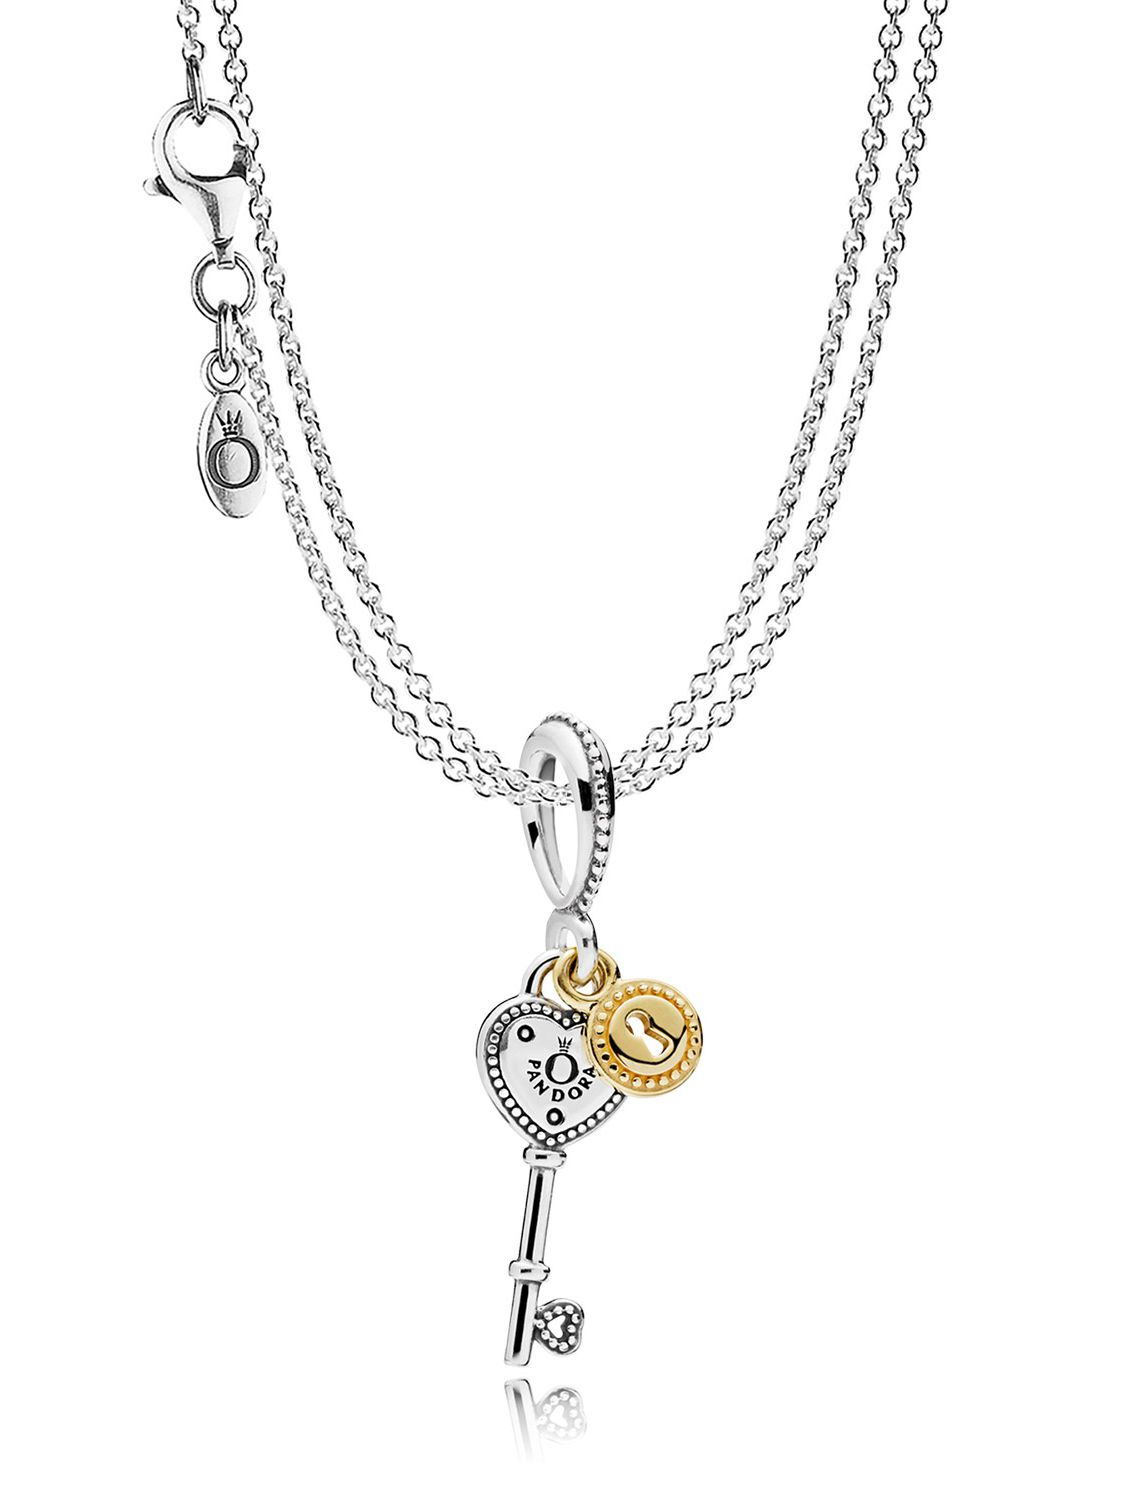 Pandora 08393 Necklace Key To My Heart Pendant With Regard To Latest Pandora Lockets Logo Necklaces (Gallery 22 of 25)